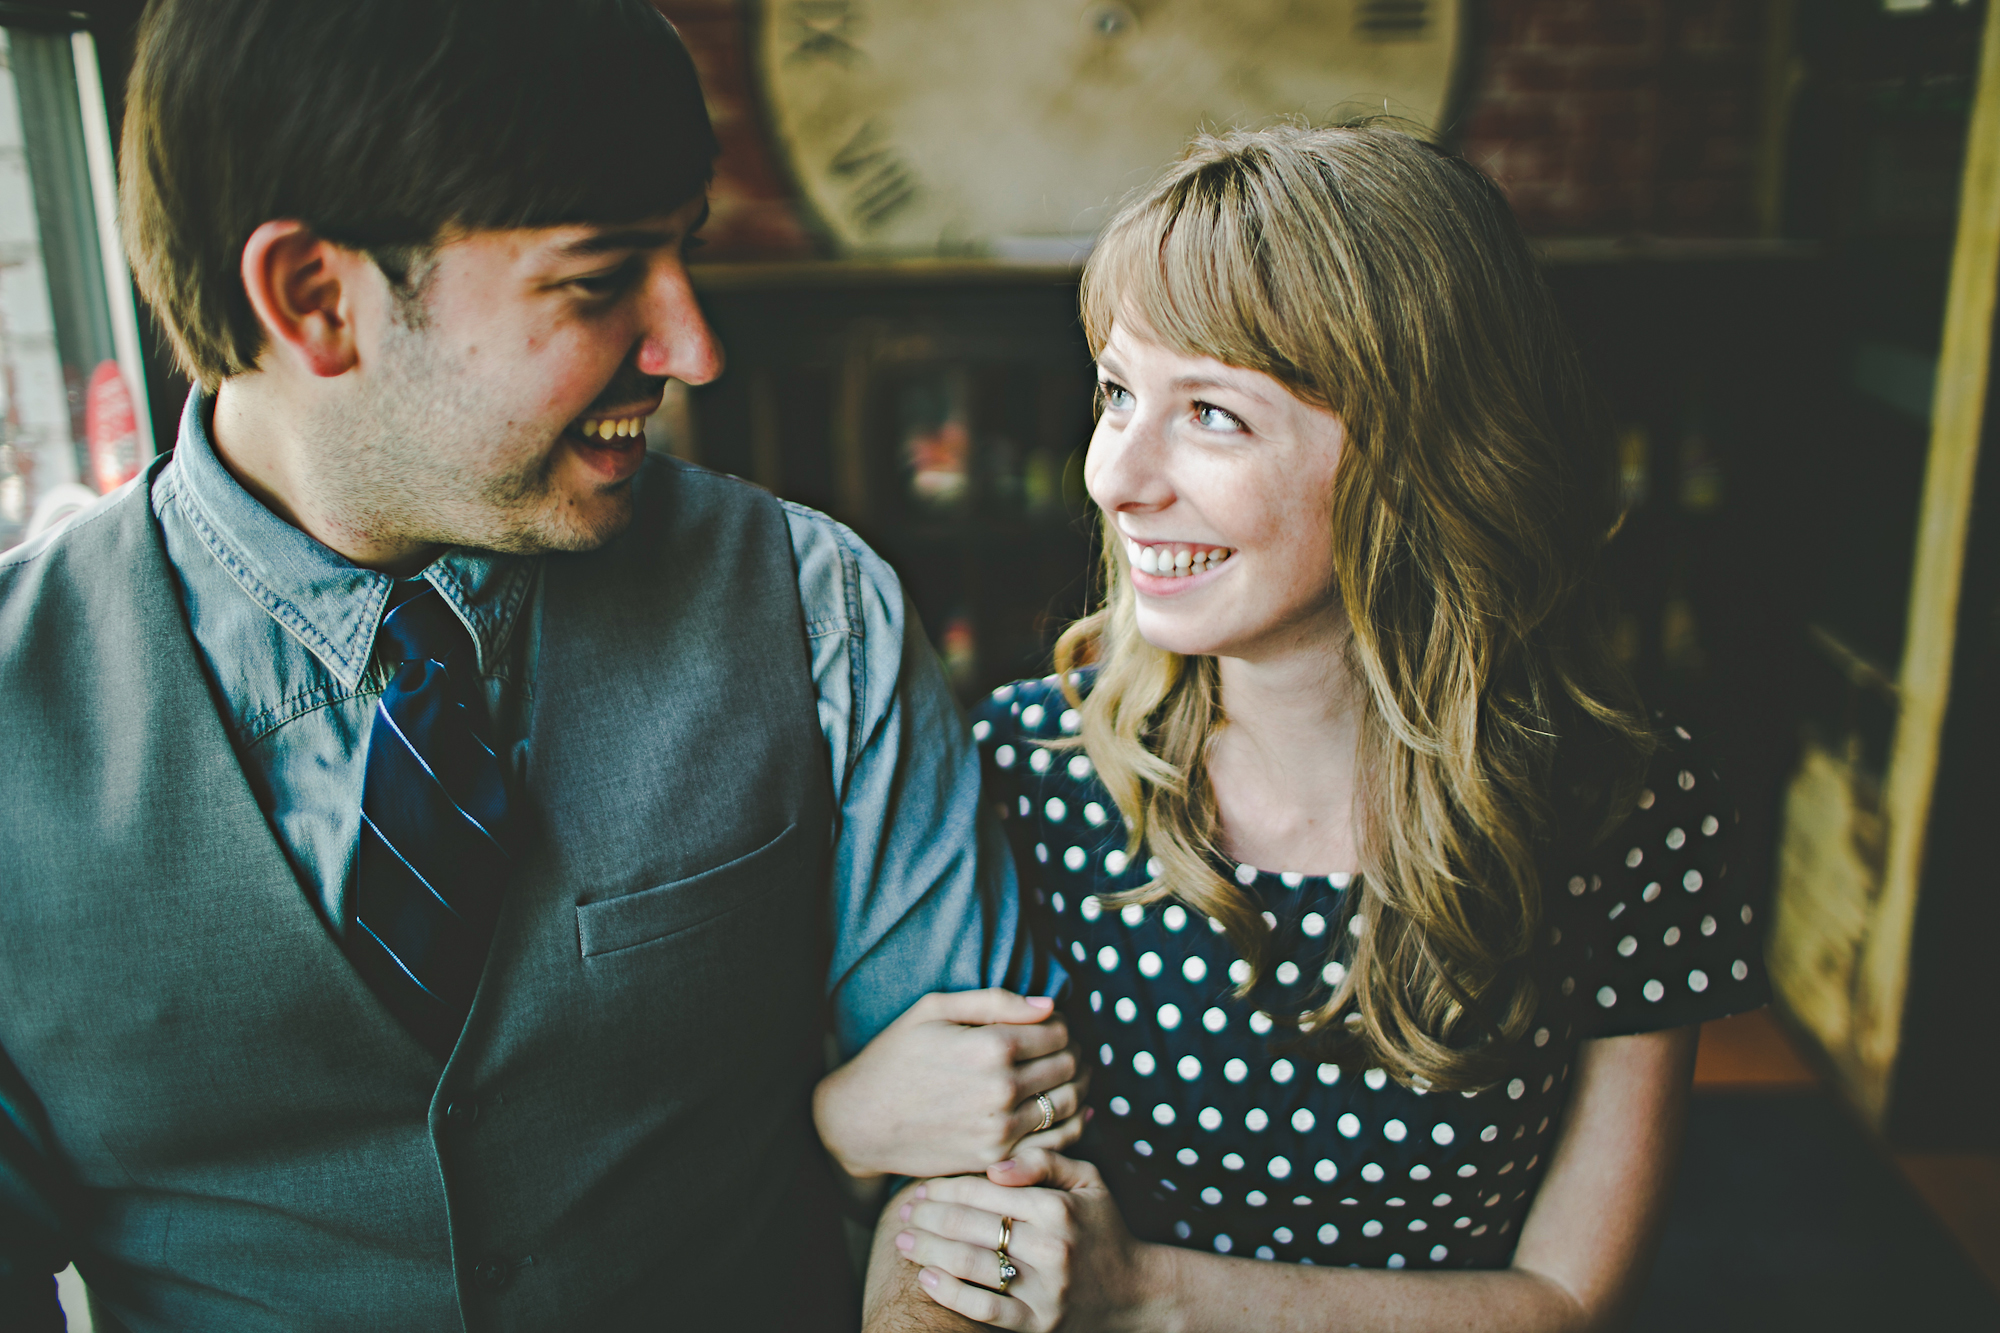 EmilyChidesterPhotography_Jena&Josh_Charlotte_NorthDavidson_Engagement-6